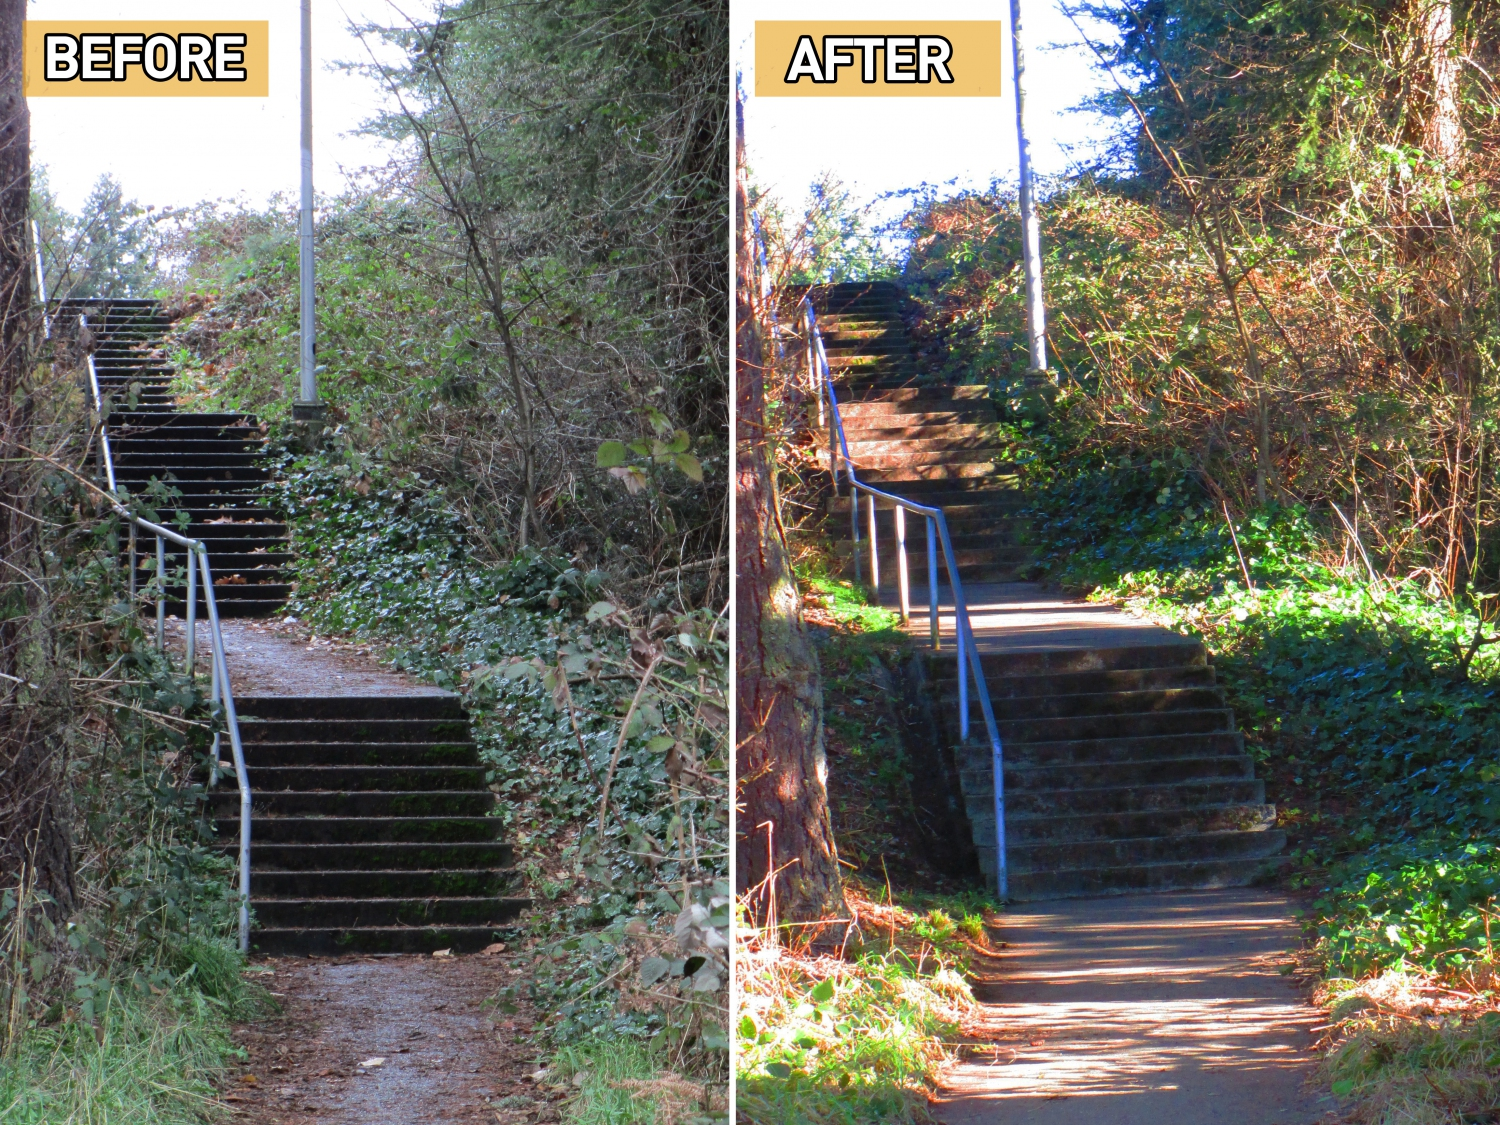 Before & after image of Walking School Bus stair route